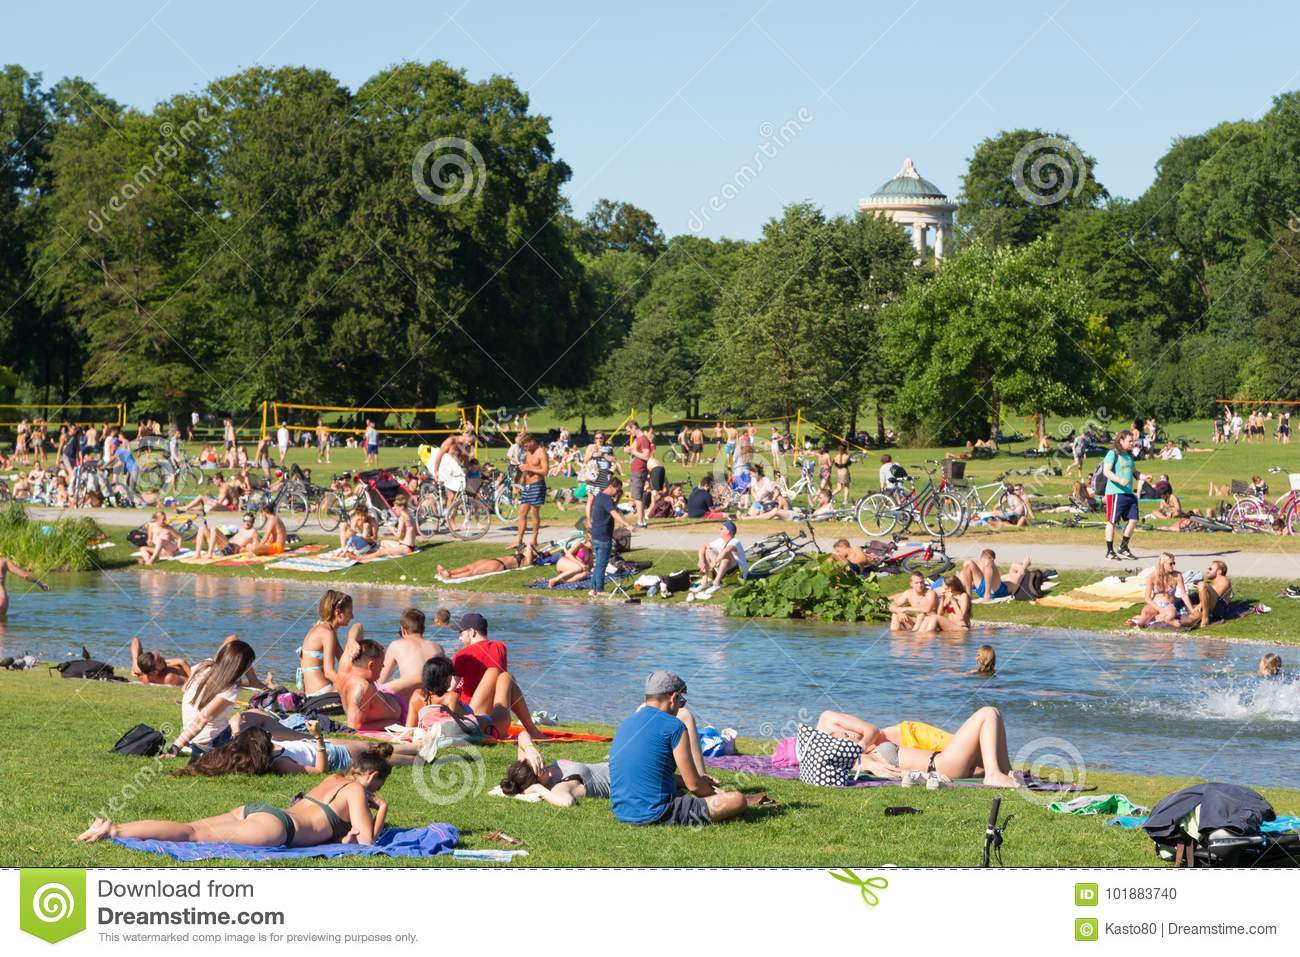 Exklusive Gartengestaltung München People Enjoying The Summer Day In Englischer Garten City Park In